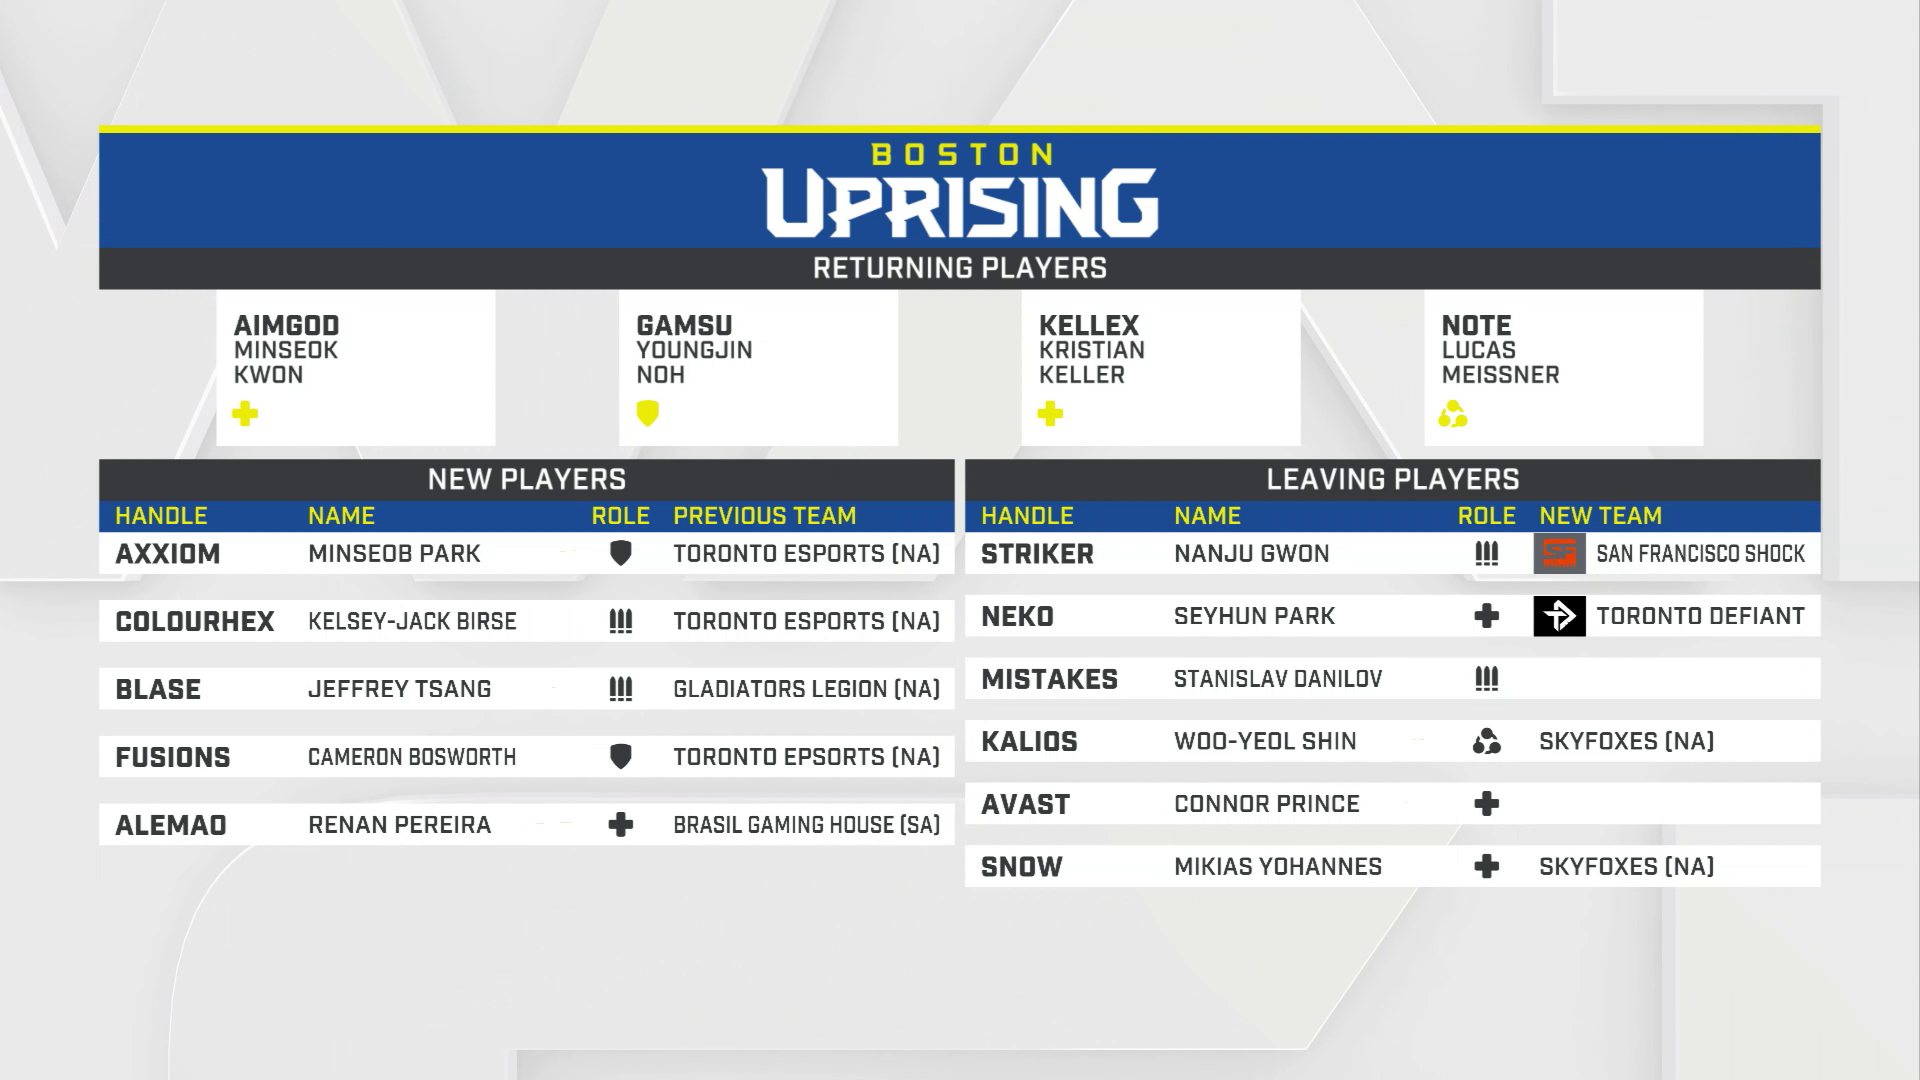 Previa de la Liga Overwatch 2019: Boston Uprising